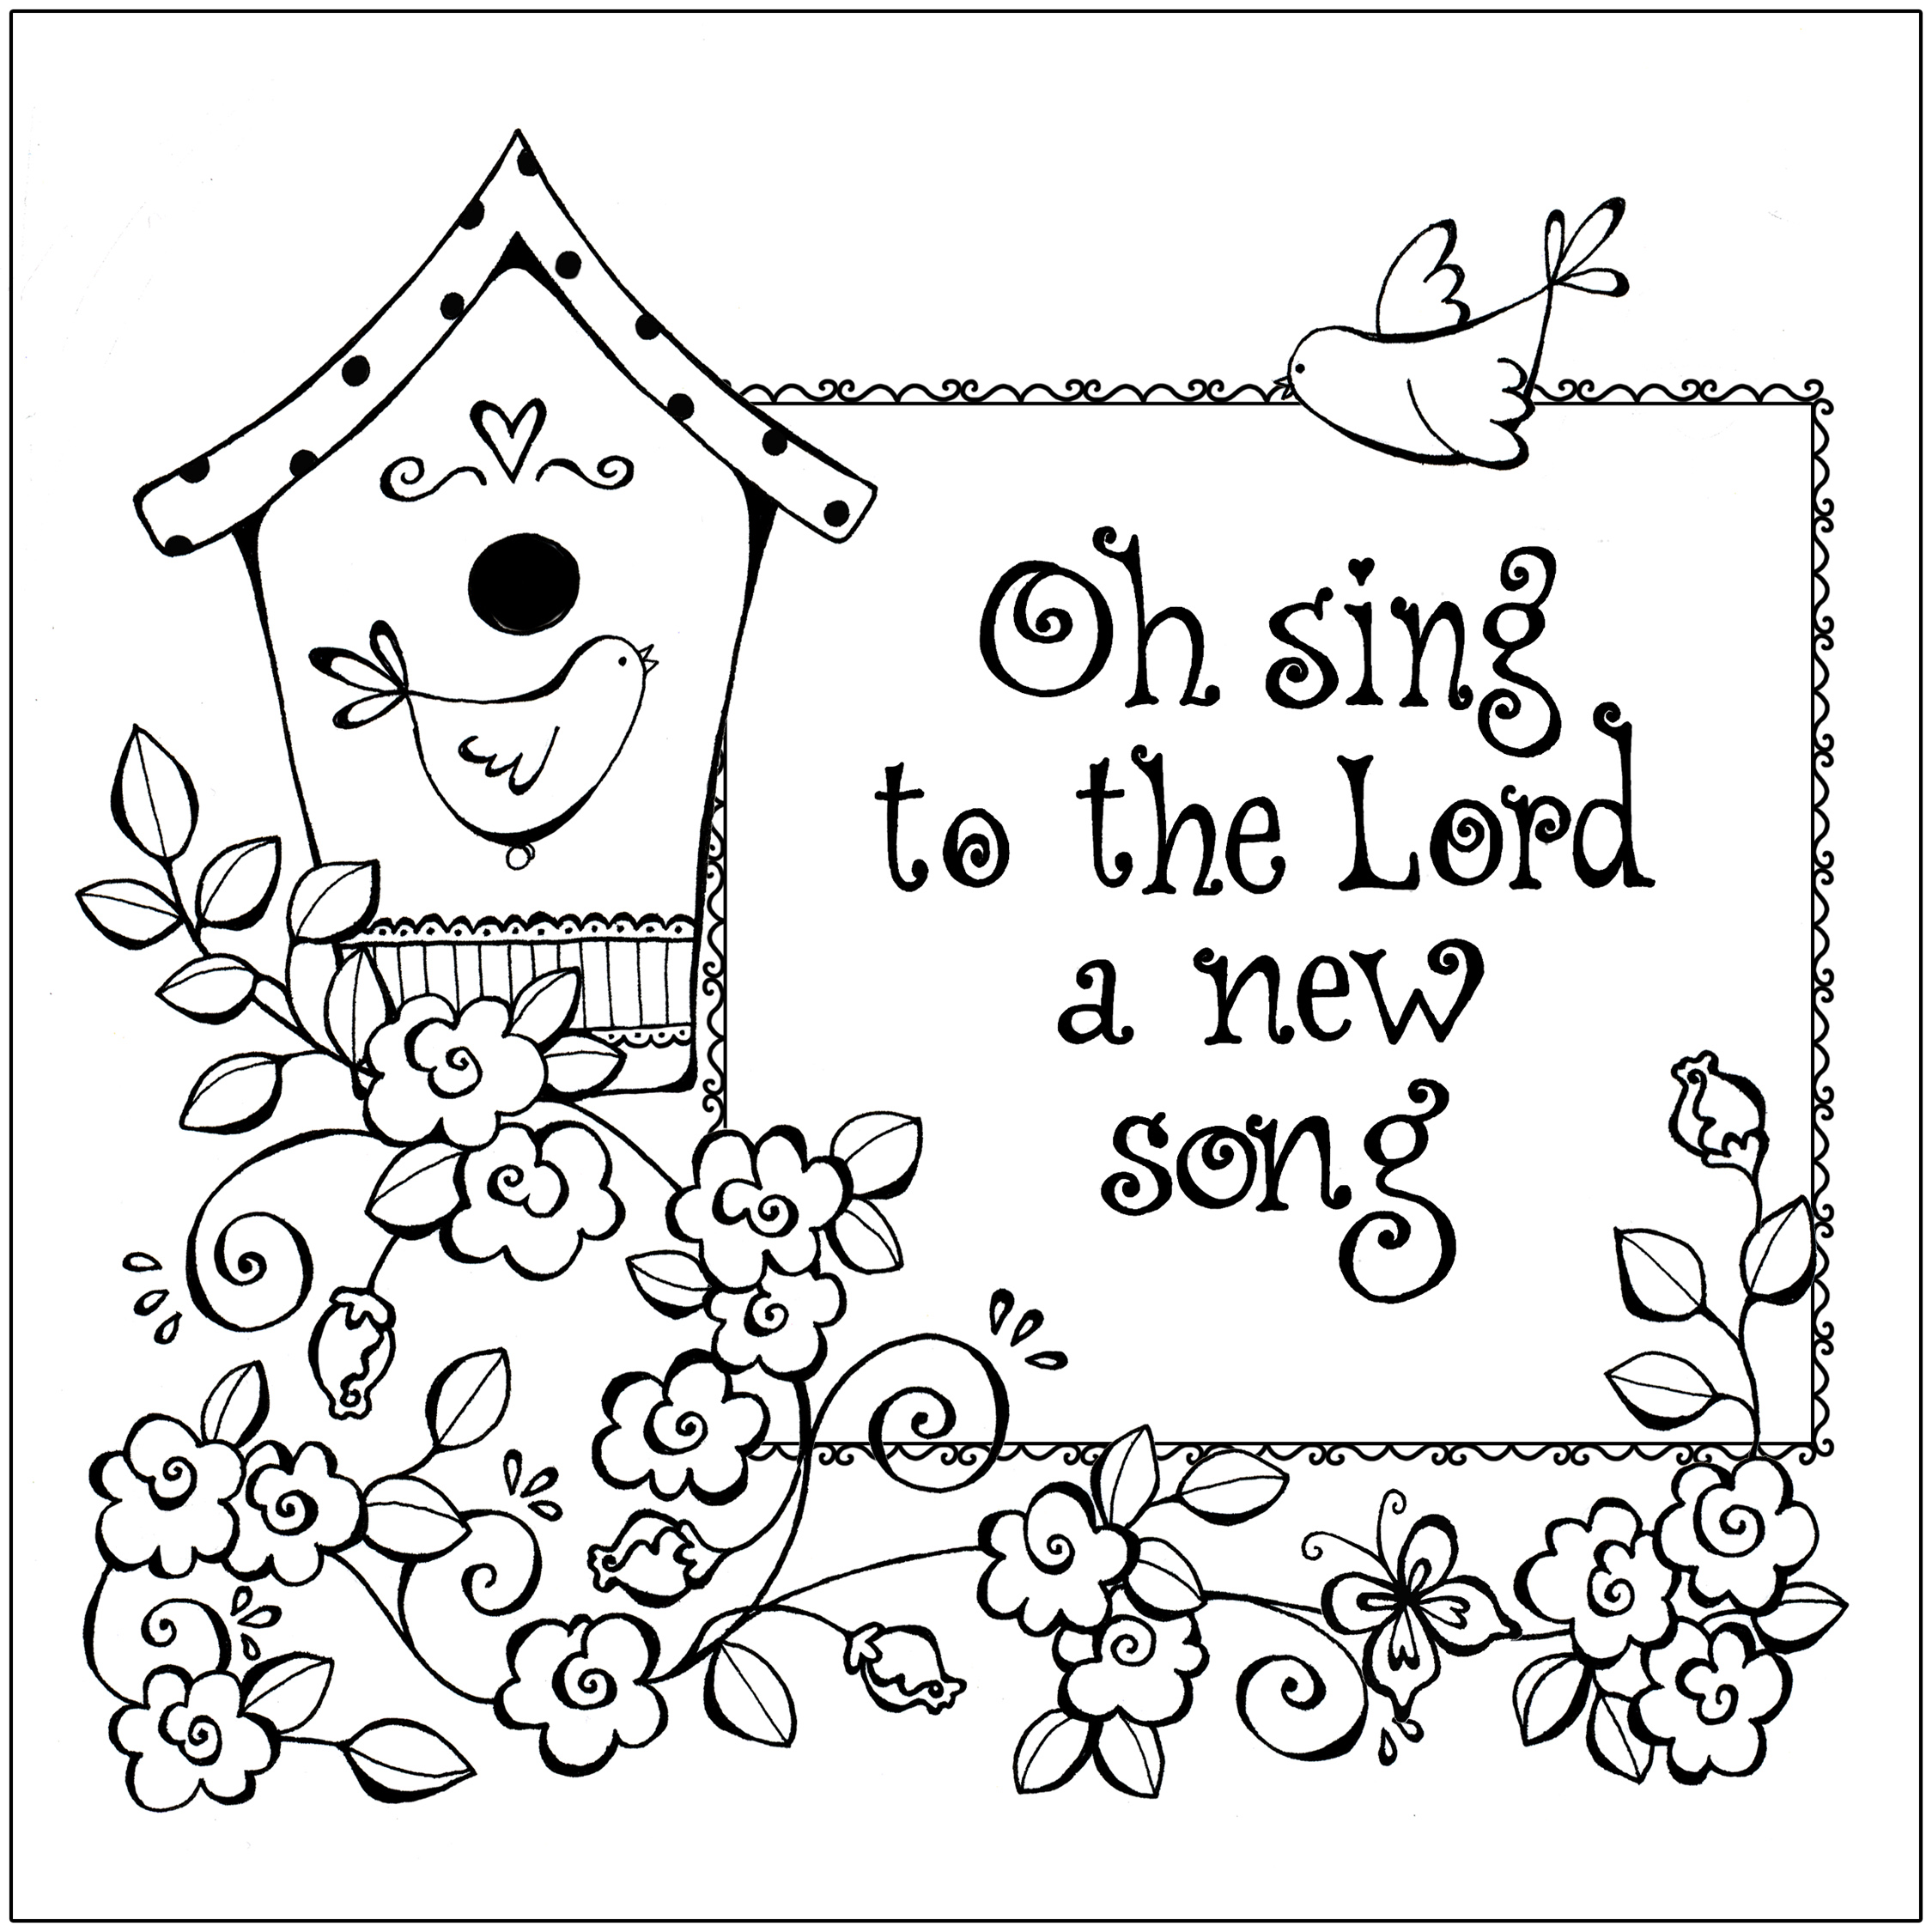 Coloring Pages Free Christian Coloring Pages free printable christian coloring pages for kids best page images